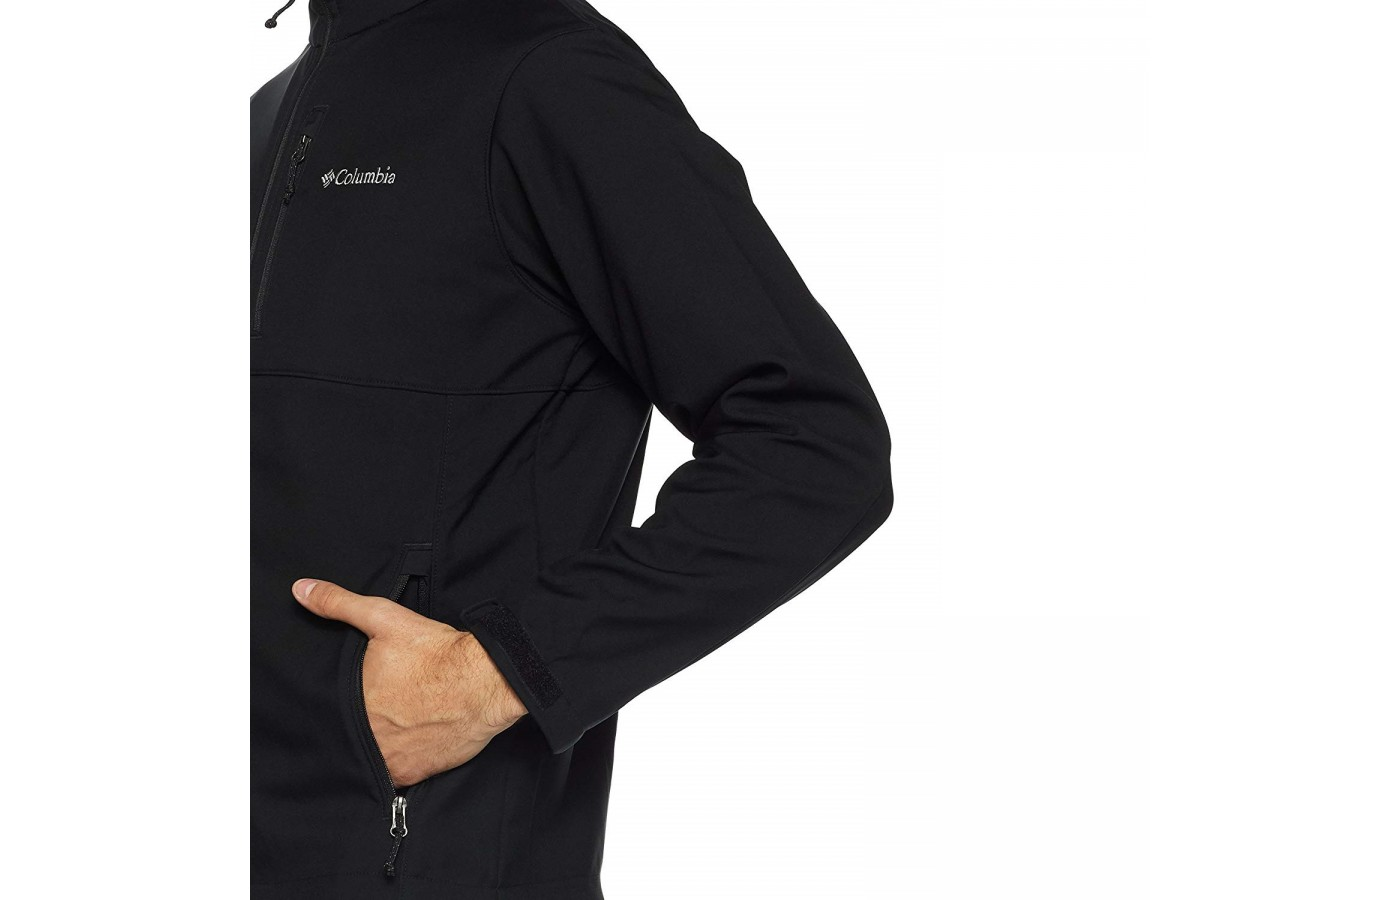 The Columbia Ascender has zip pockets to keep valuables safe and to offer additional warmth to the hands.